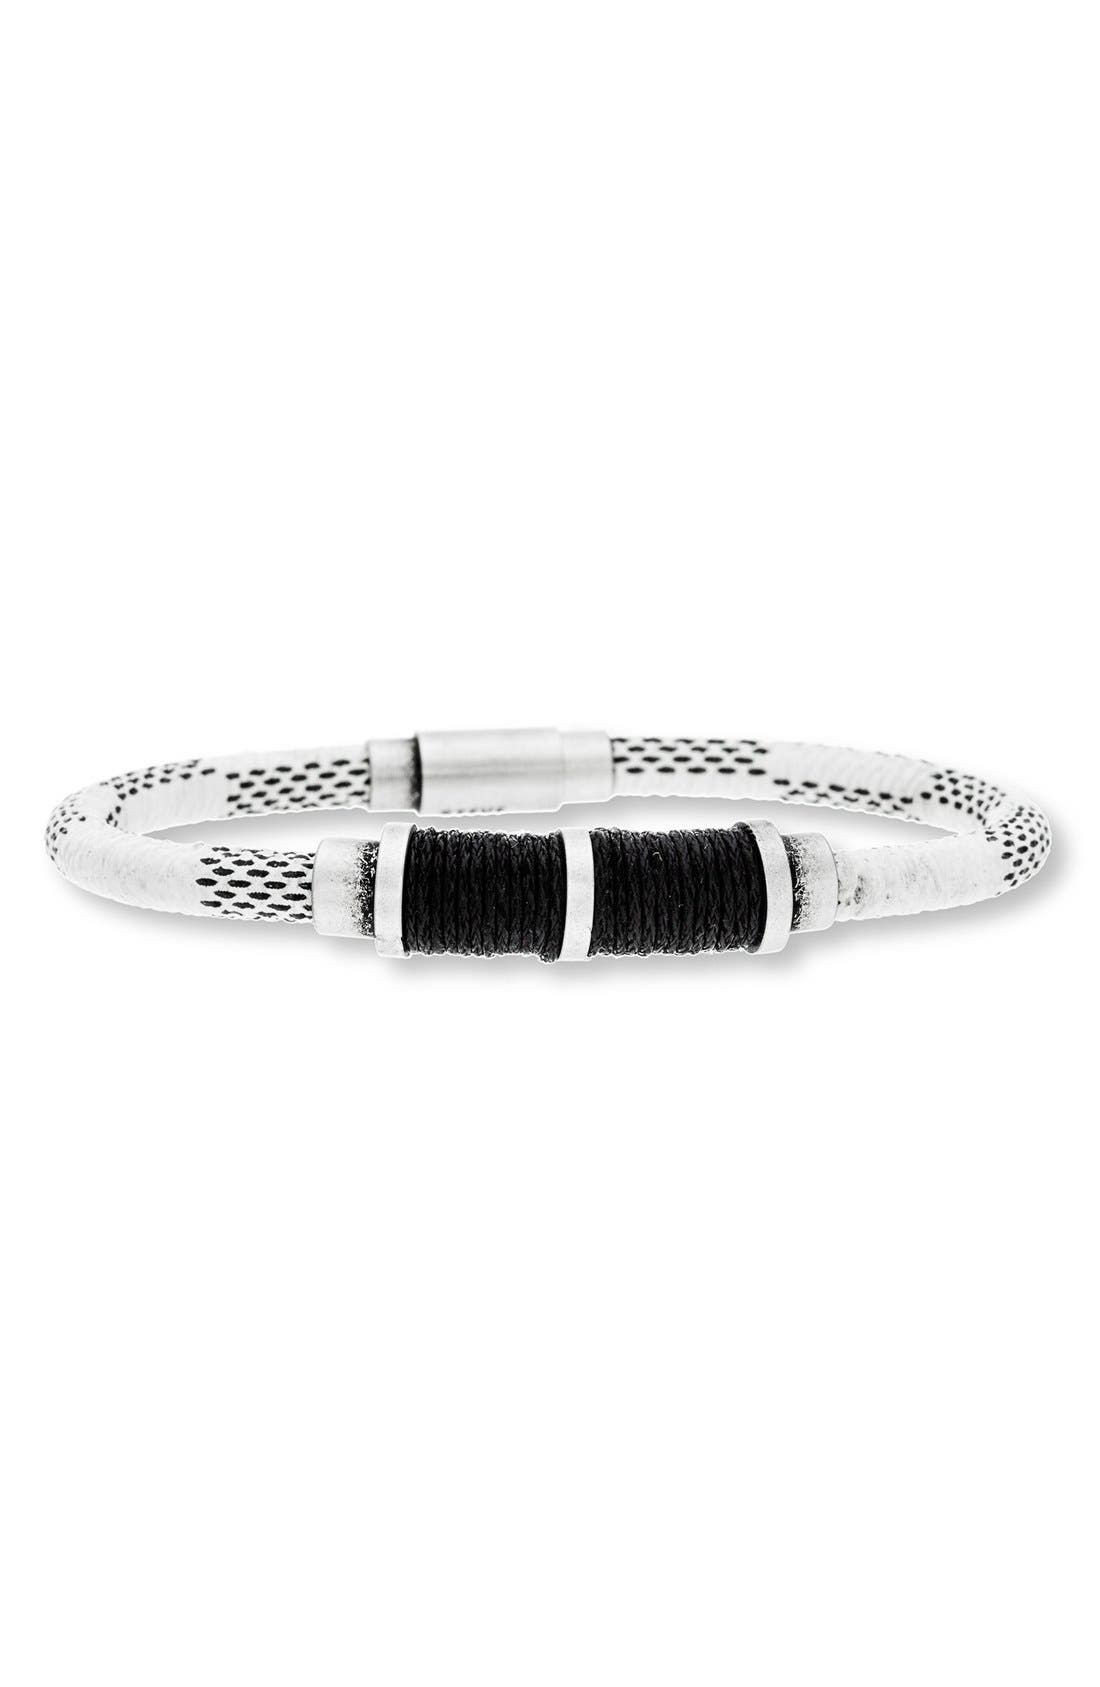 Stainless Steel & Leather Bracelet,                         Main,                         color, 100